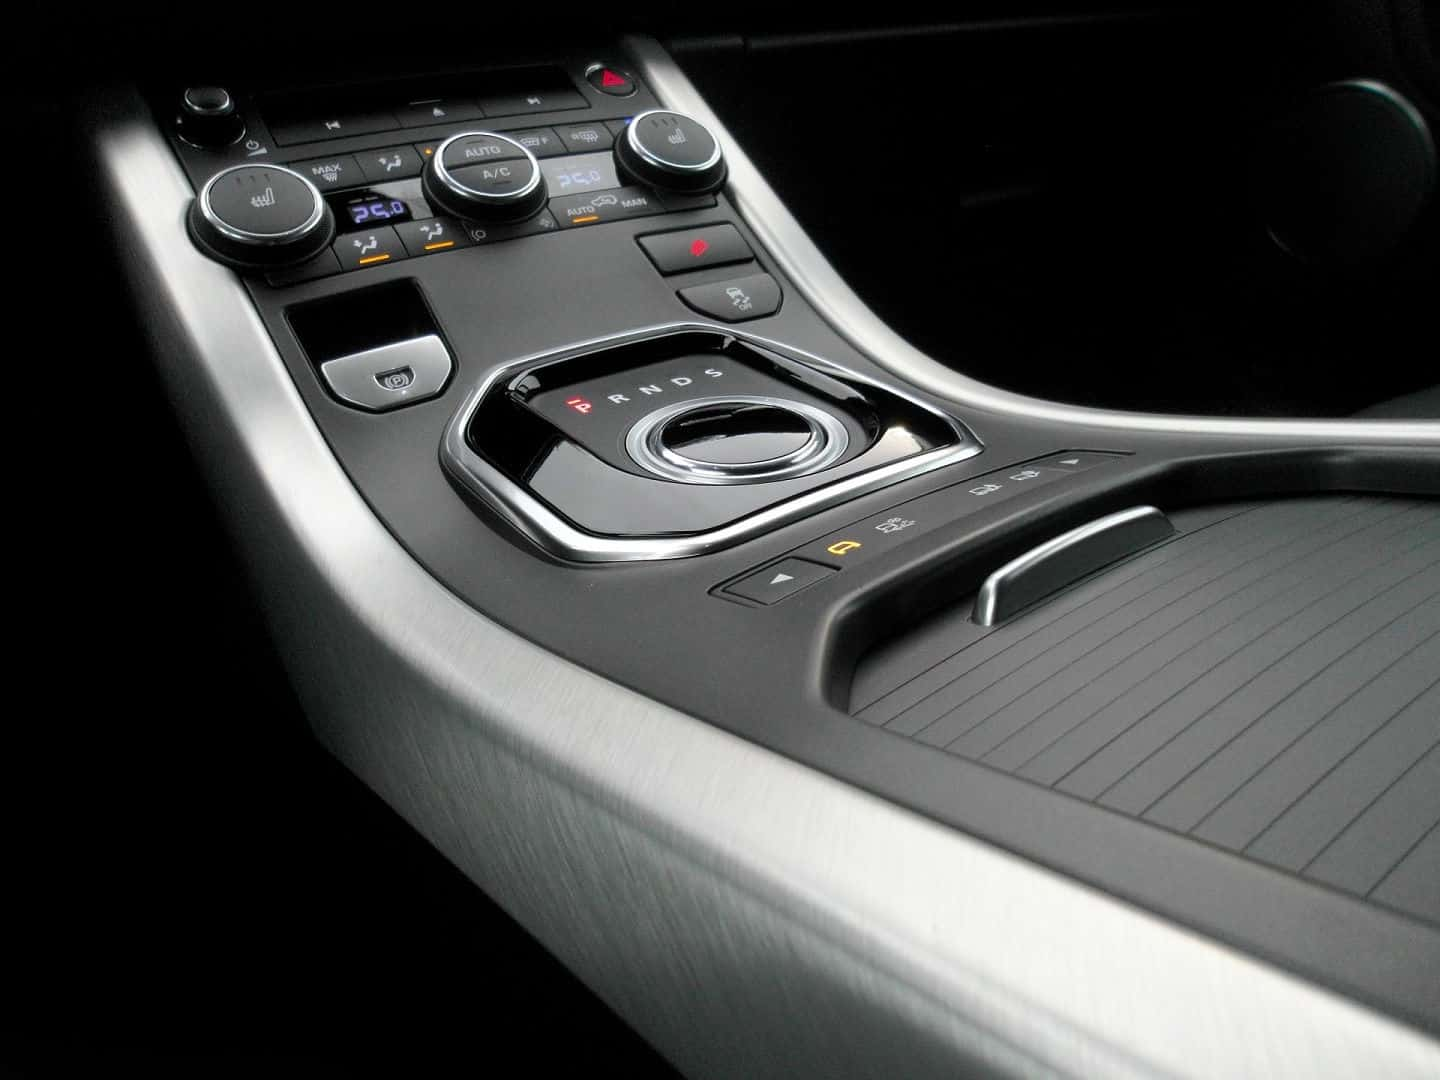 Range Rover Evoque Center Console